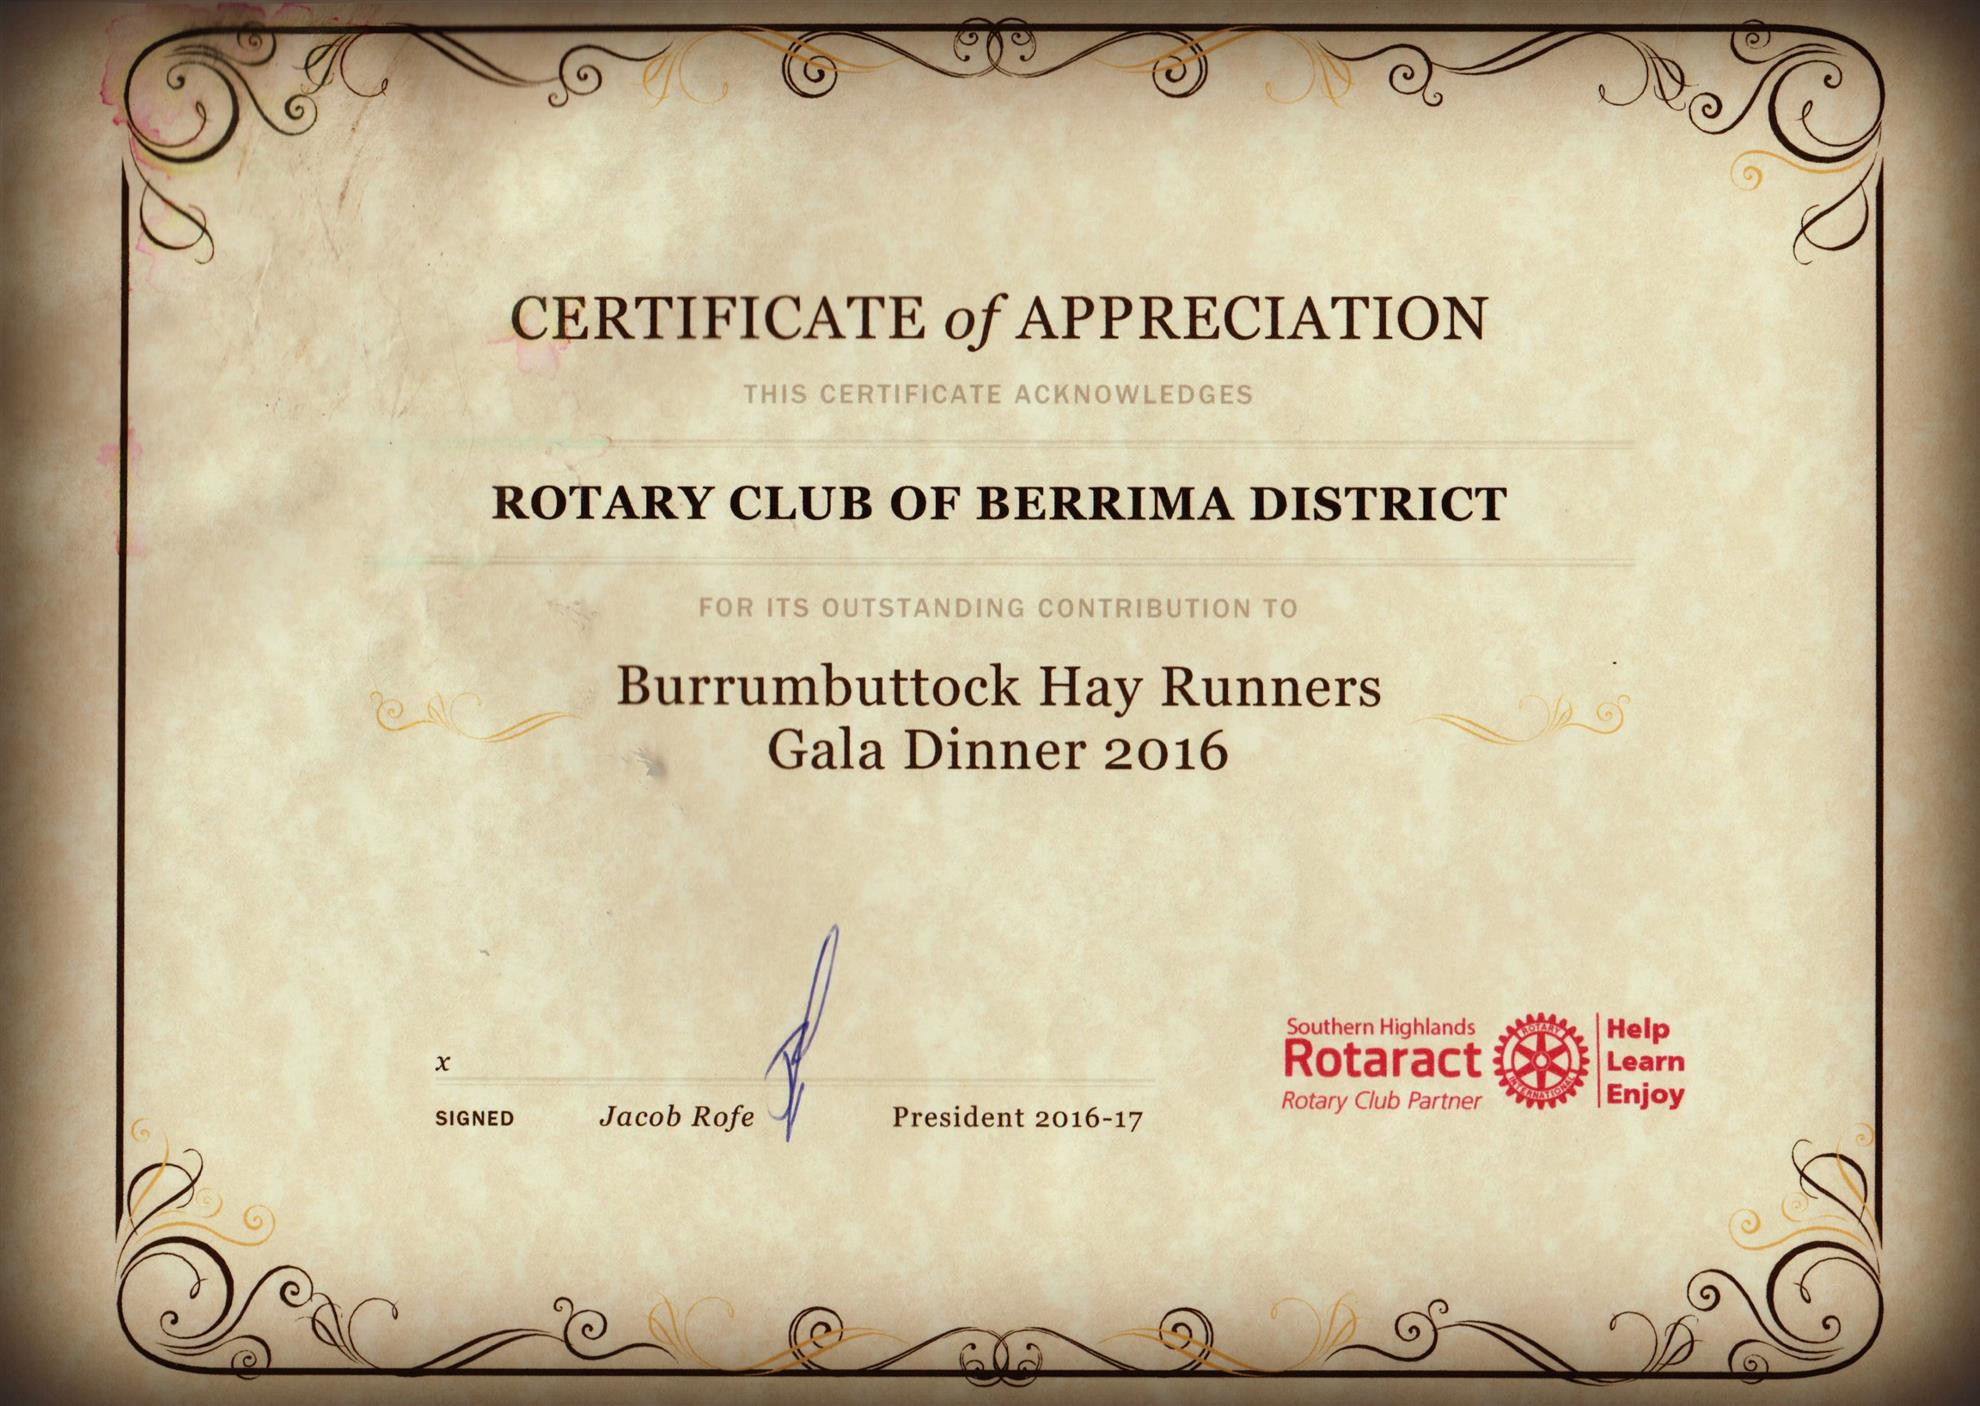 Southern highlands rotoract rotary club of berrima district for Rotary certificate of appreciation template